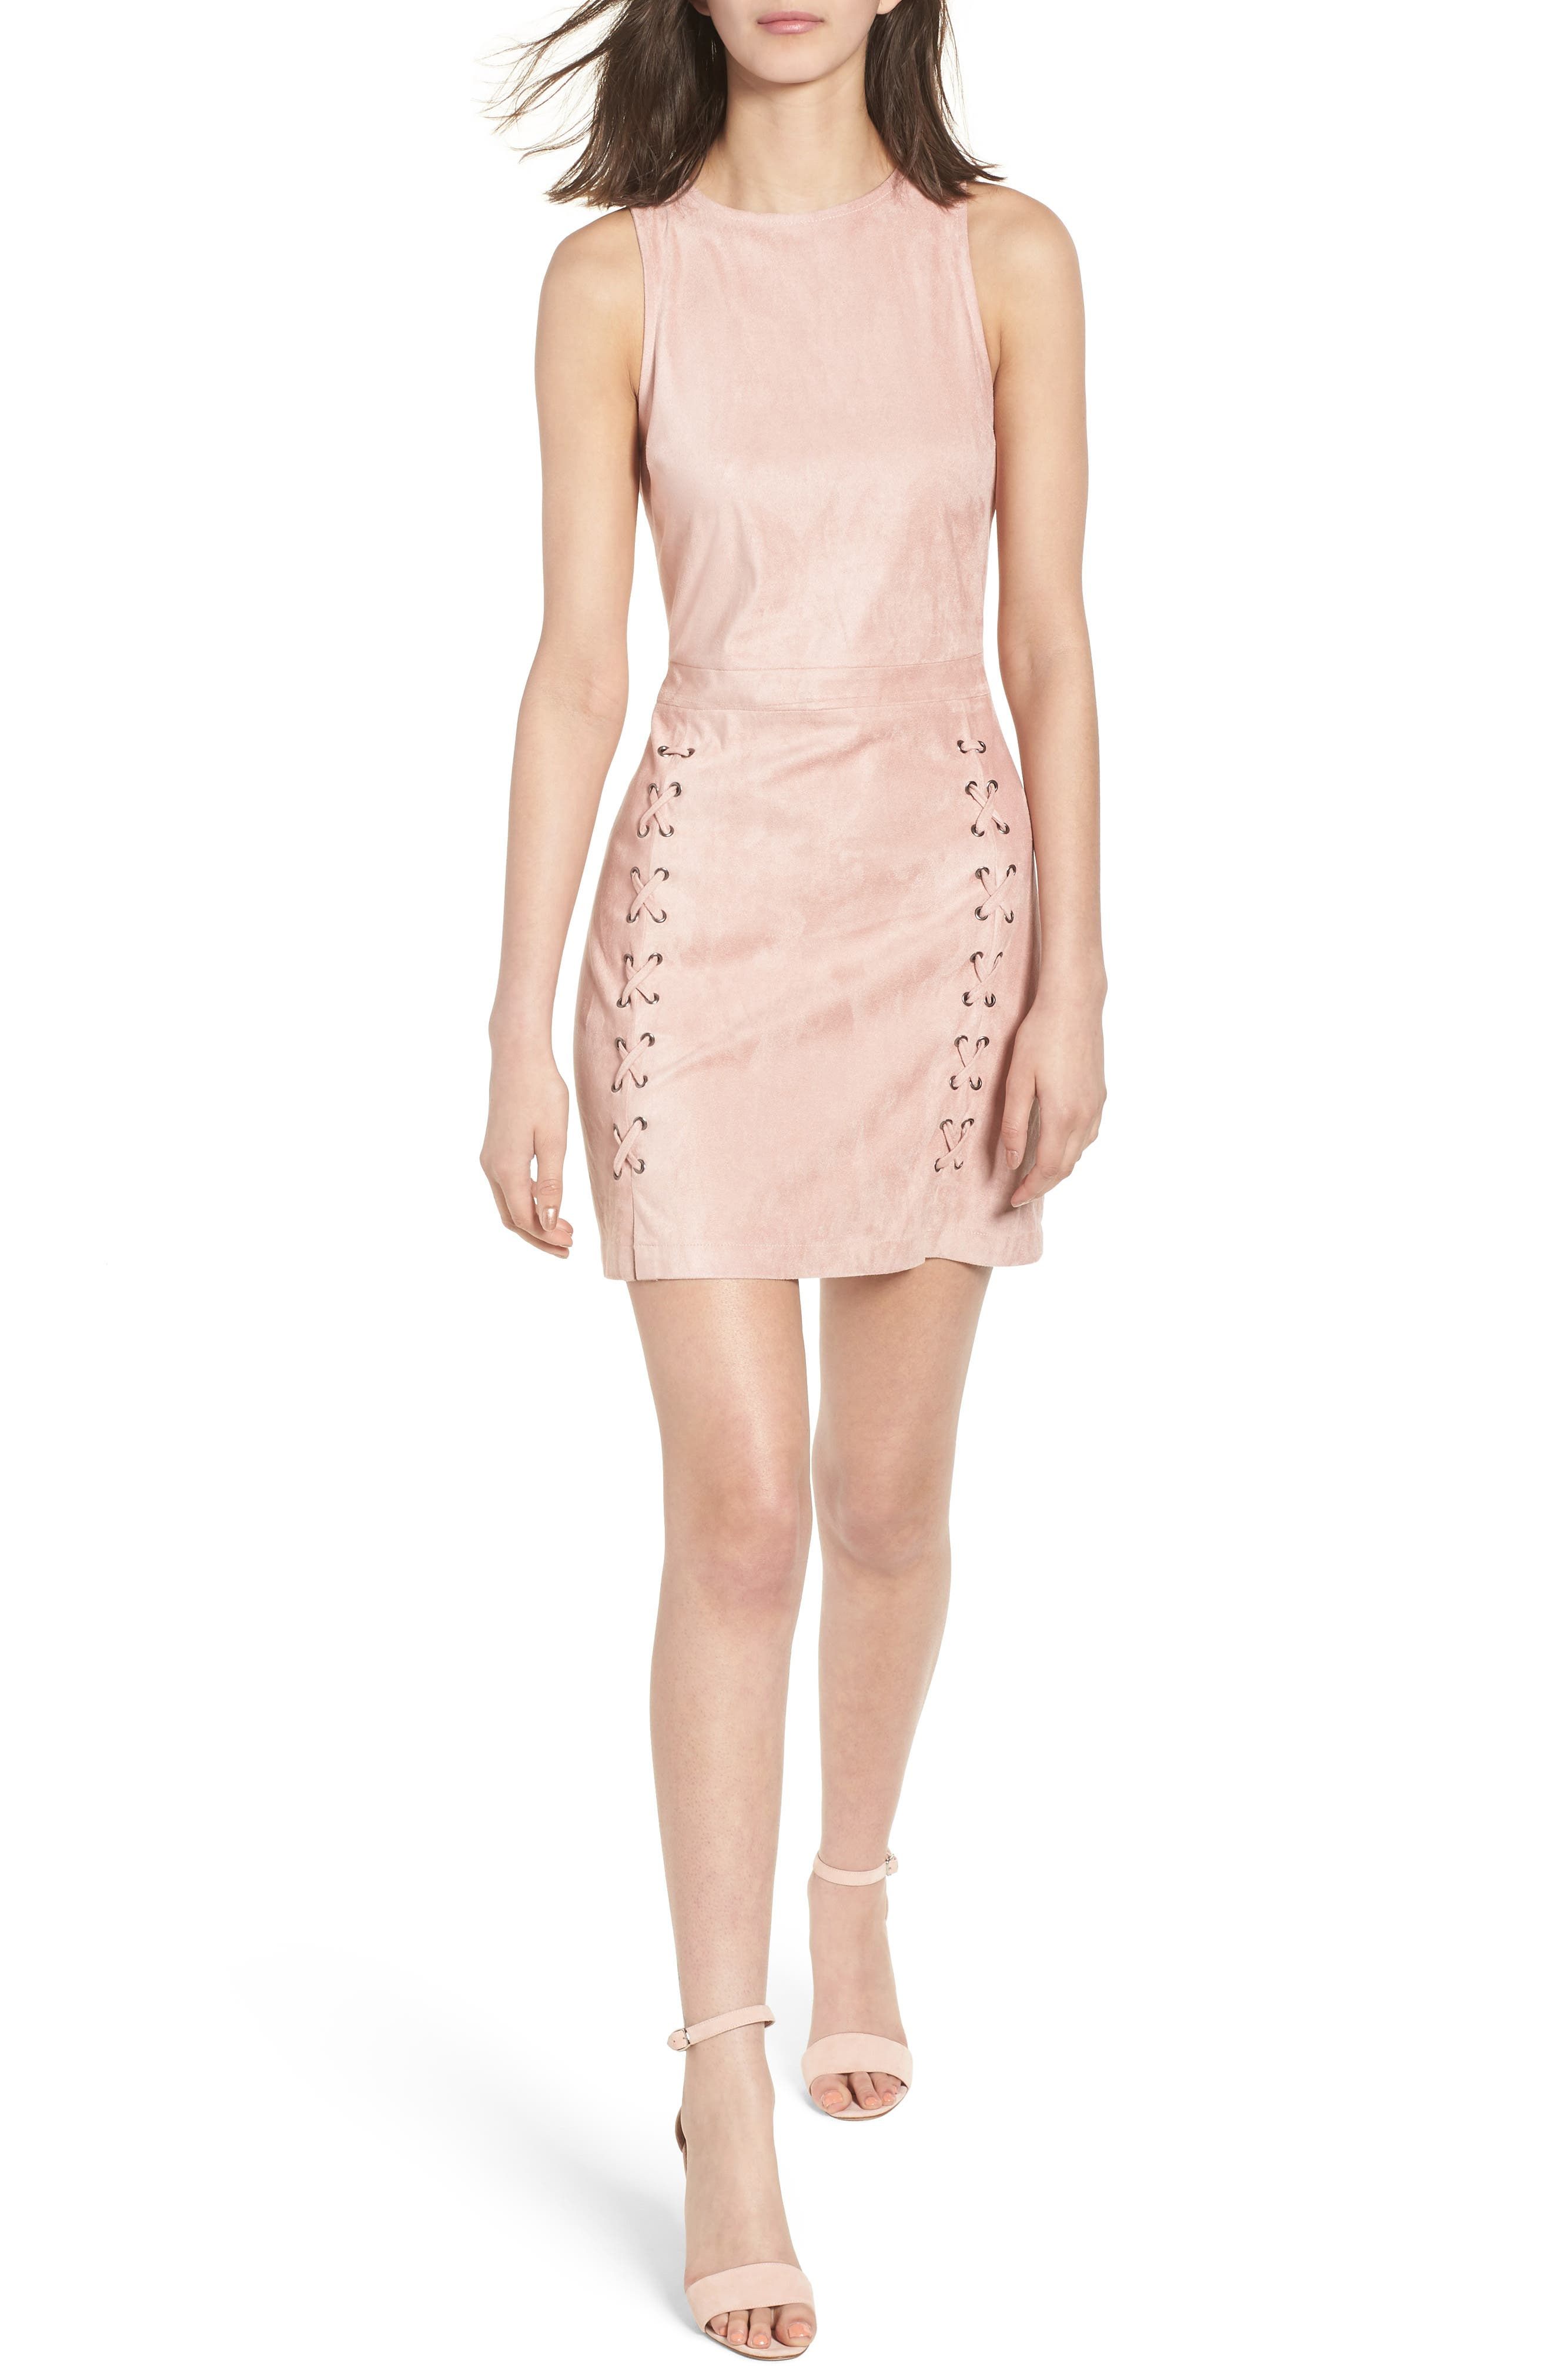 Daton Faux Suede Dress,                             Main thumbnail 1, color,                             Nude Pink